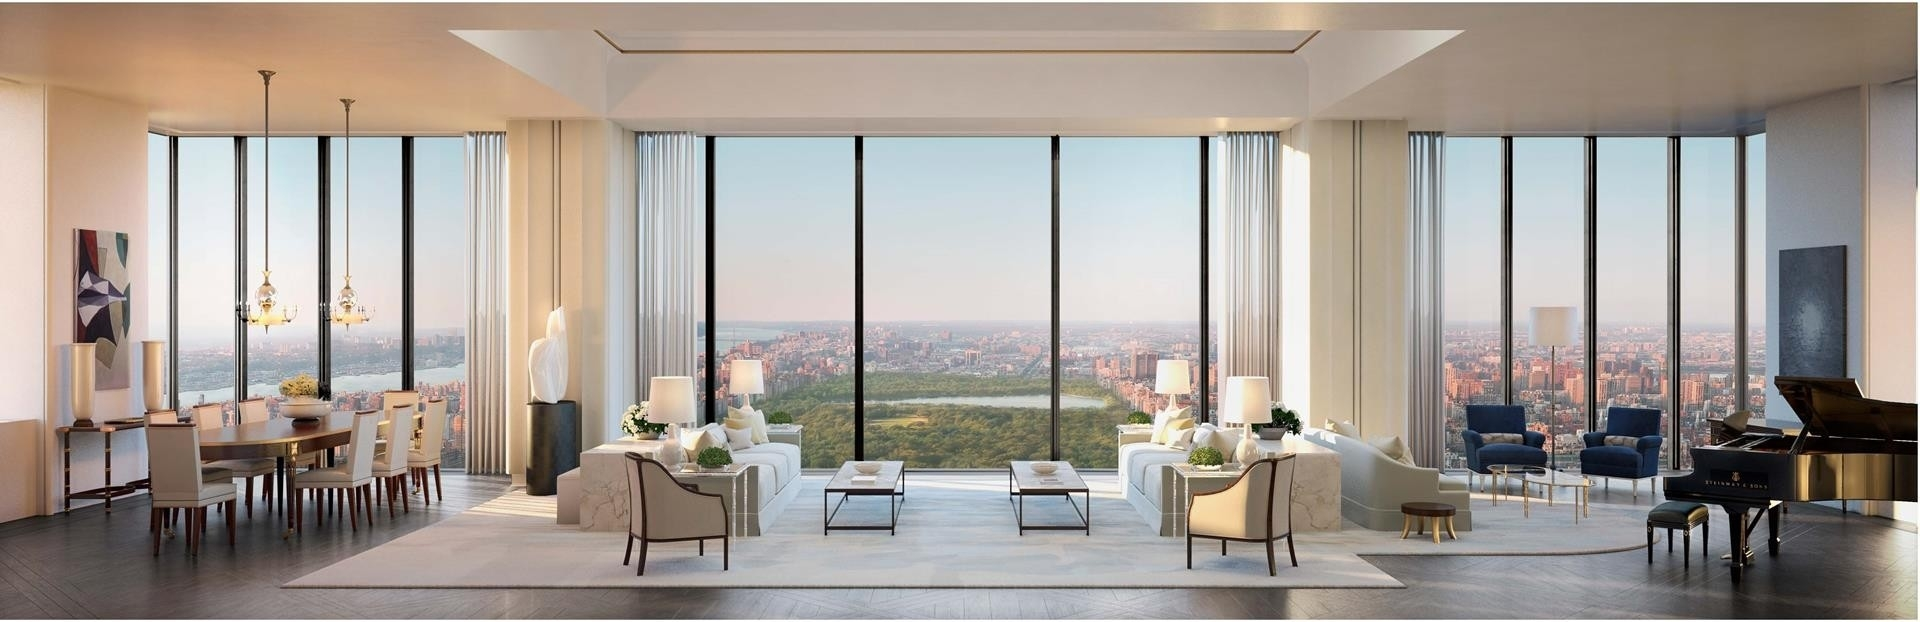 2. Condominiums for Sale at 111 W 57TH ST , PH72 Midtown West, New York, NY 10019